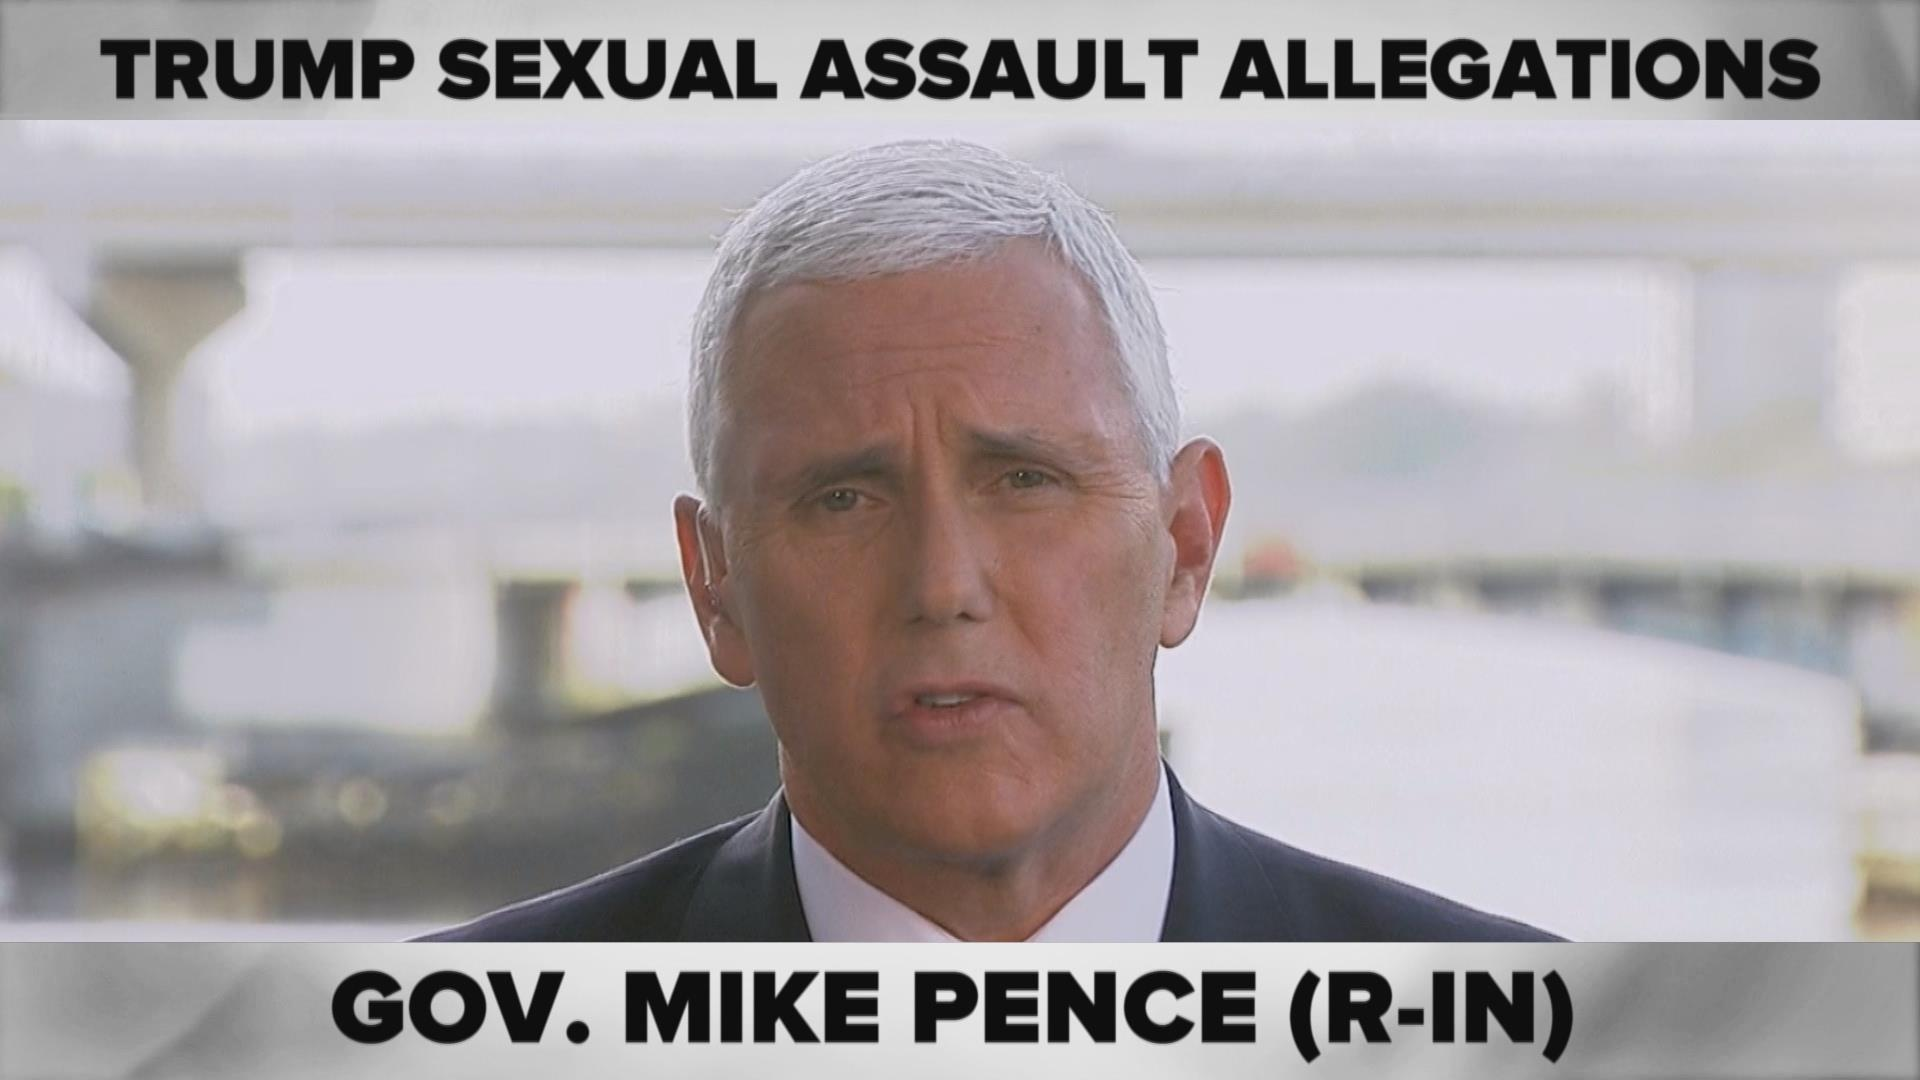 ComPRESSed: Allegations Against Trump 'Unsubstantiated,' Pence Says